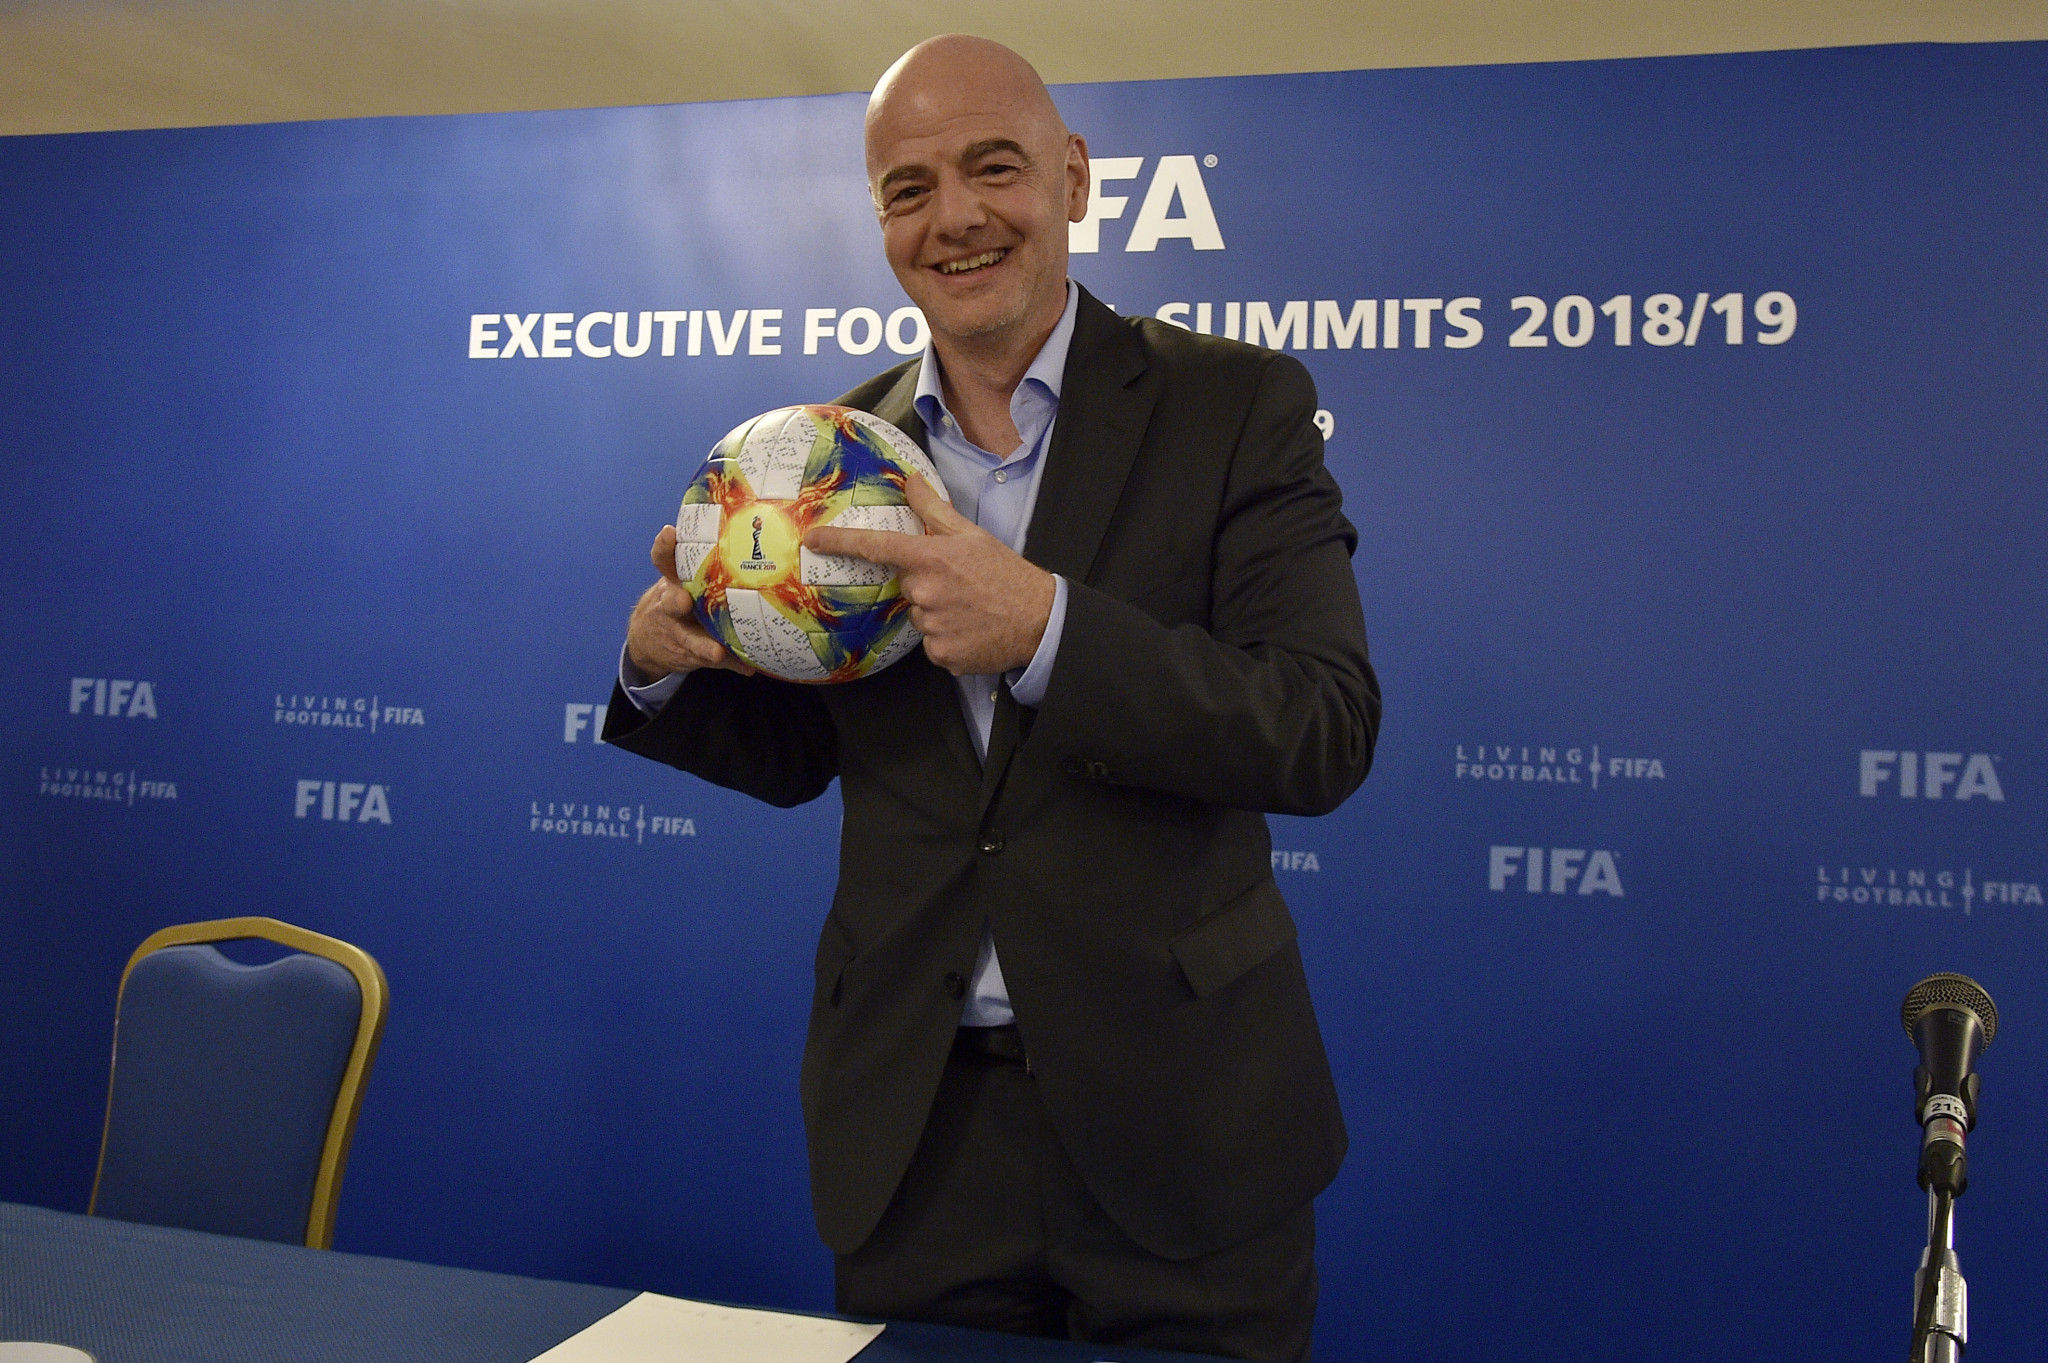 Oman and Kuwait could host matches at 2022 FIFA World Cup in Qatar